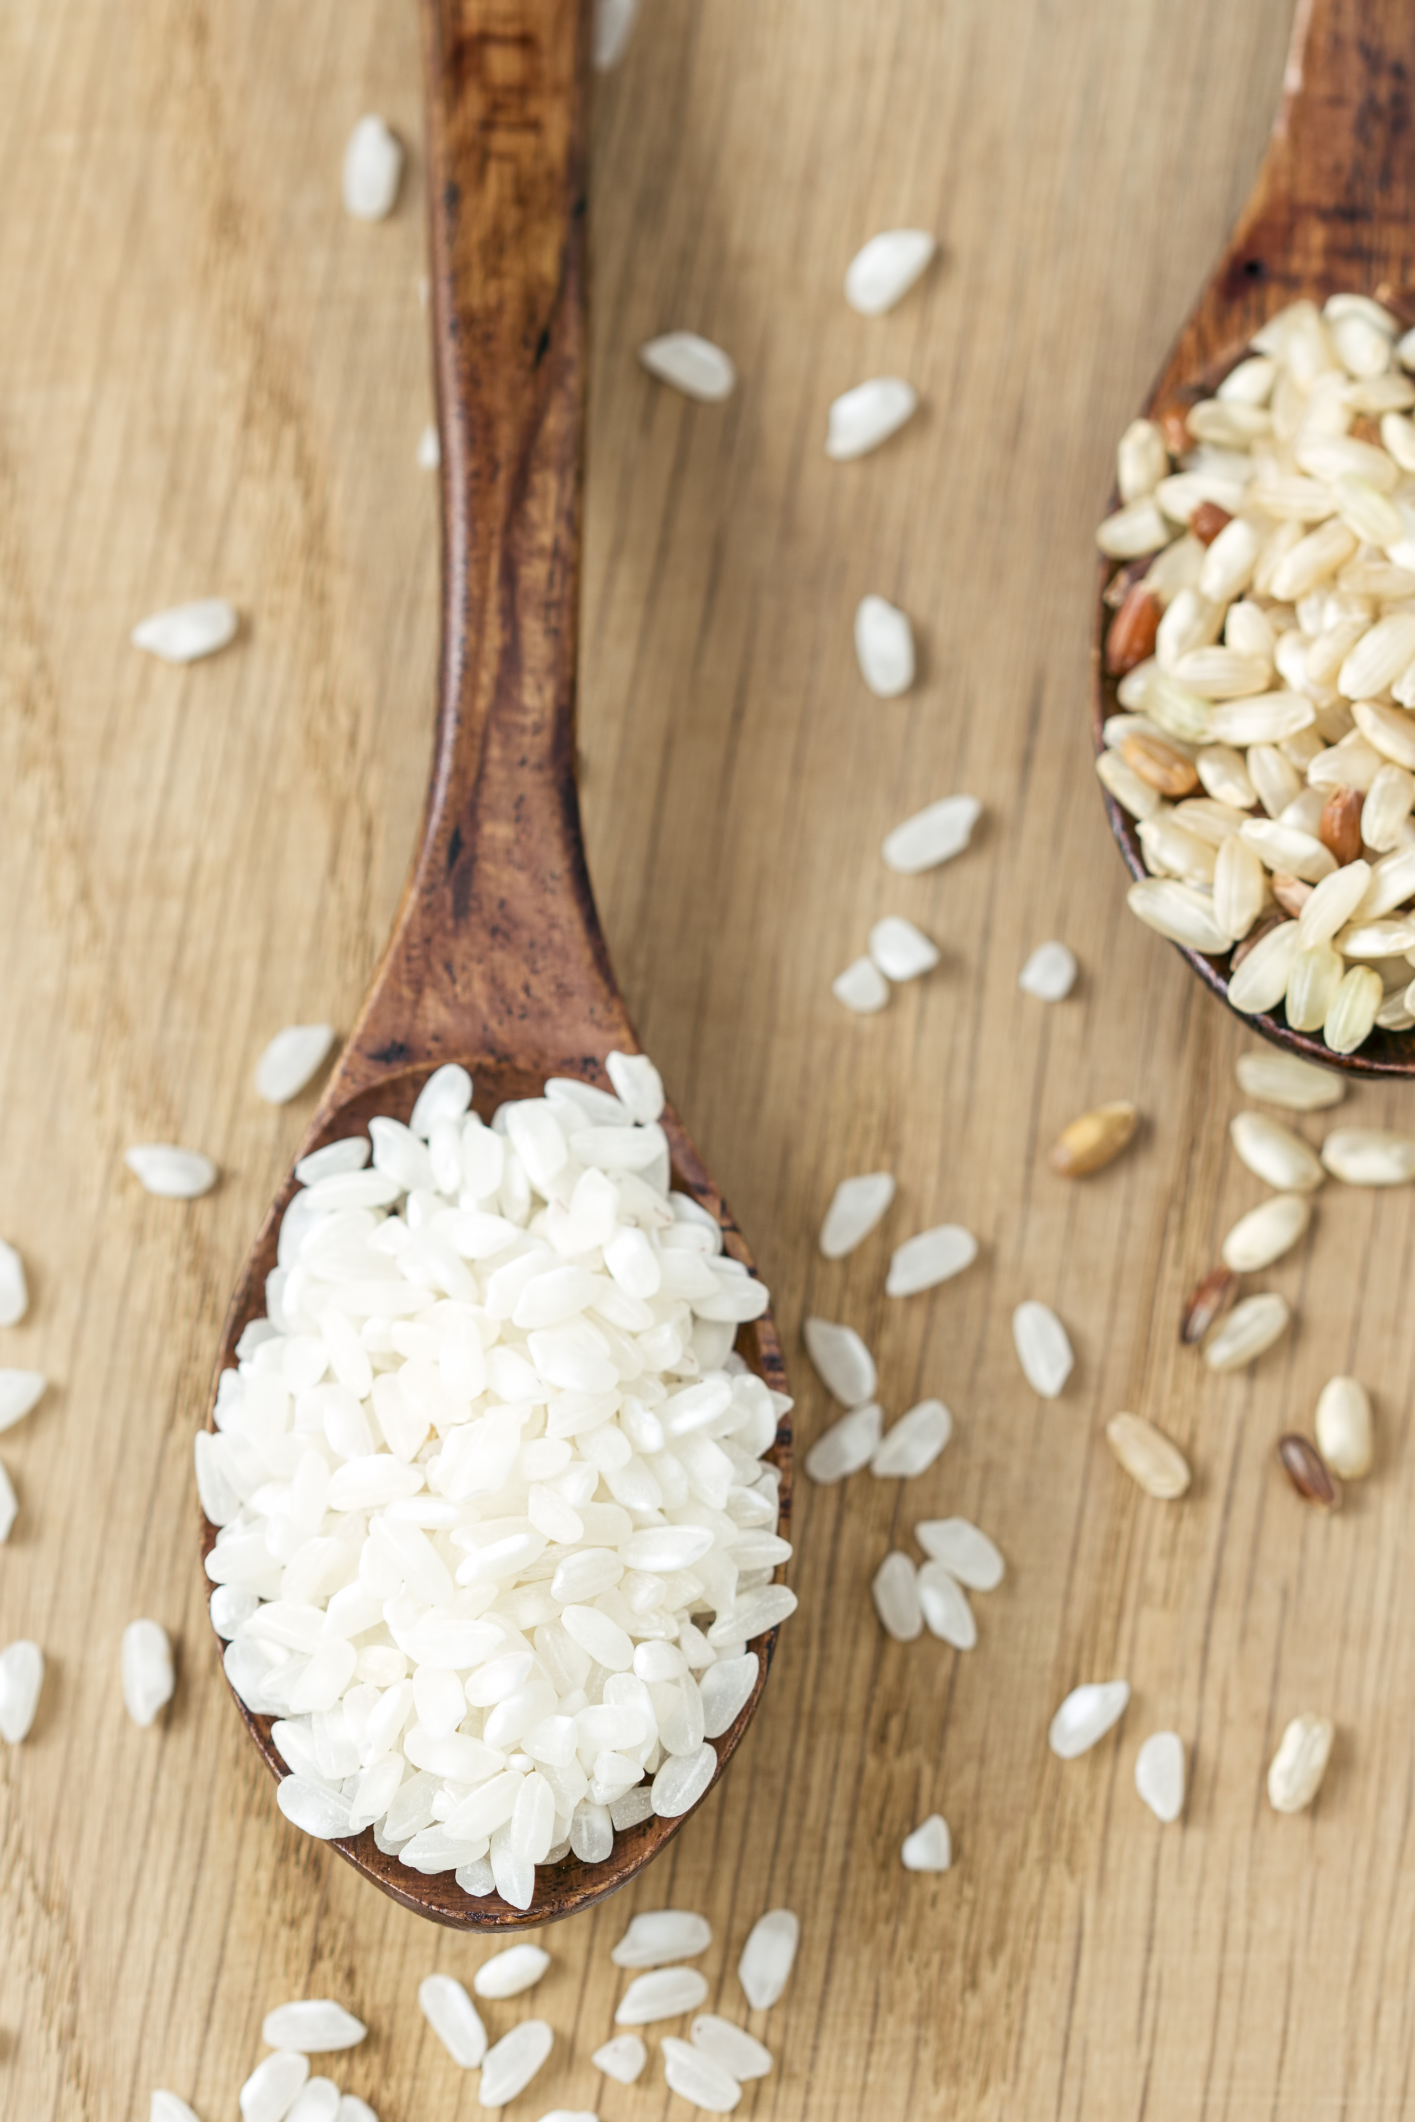 How to Do the Rice Diet | Healthfully